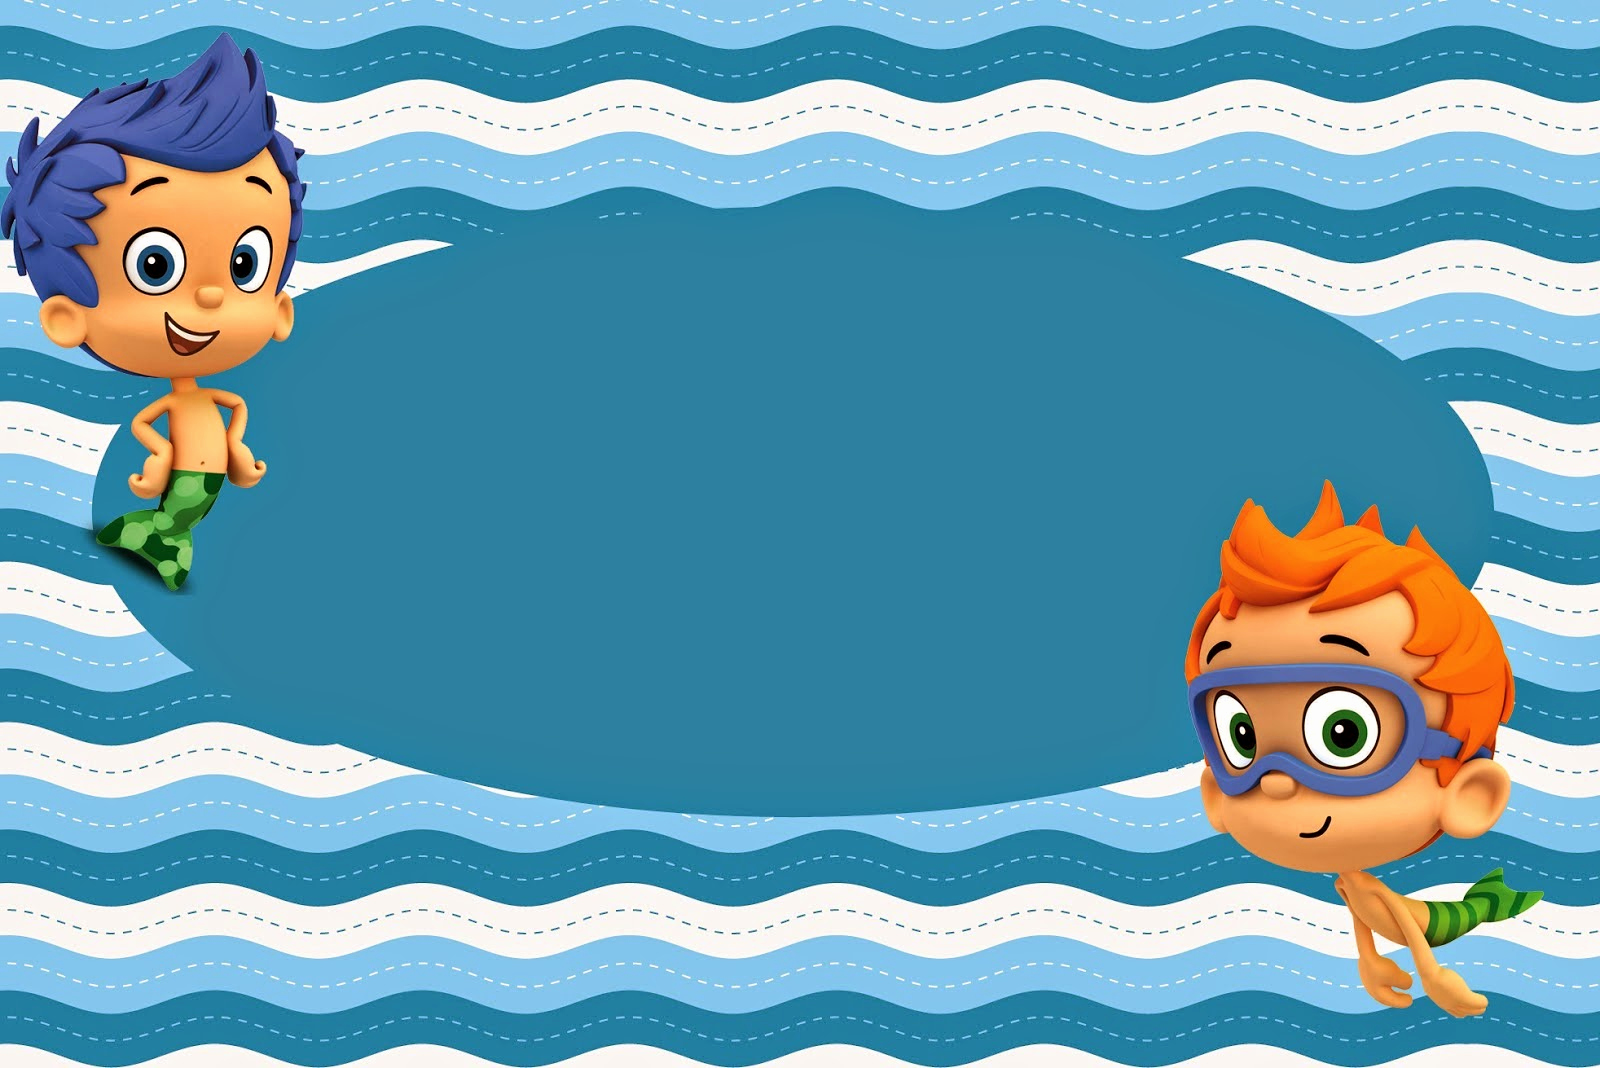 Bubble Guppies Invitation Template Free Luxury Bubble Guppies Free Printable Invitations Oh My Fiesta